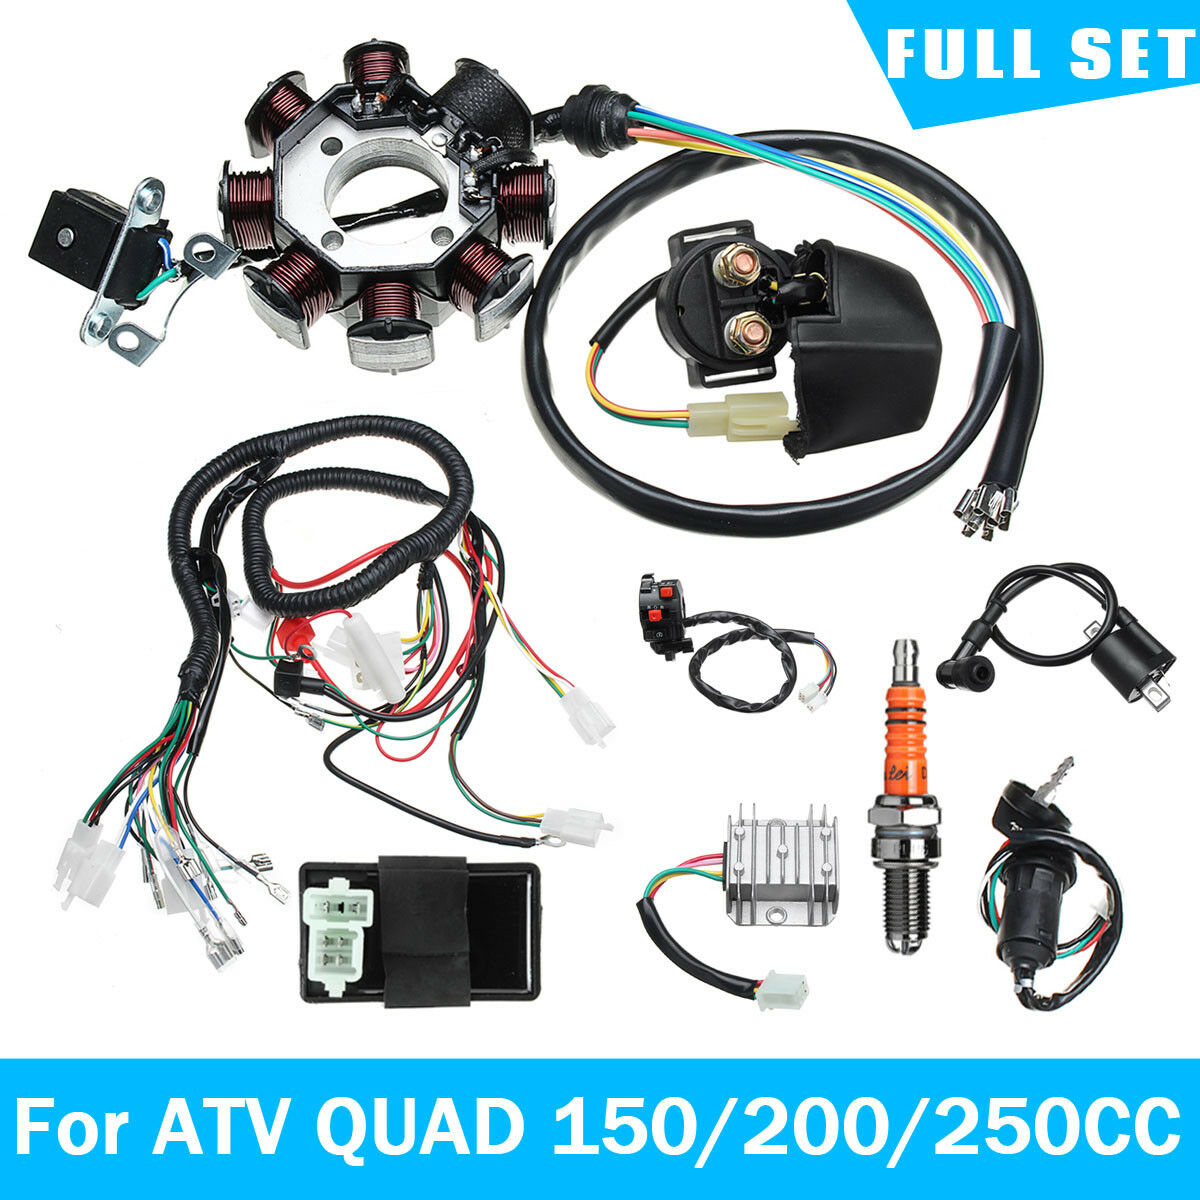 Electric Wiring Harness Wire Loom Stator Full Kit For ATV QUAD 150/200/250CC Beach ATV Wiring harness Car Accessories